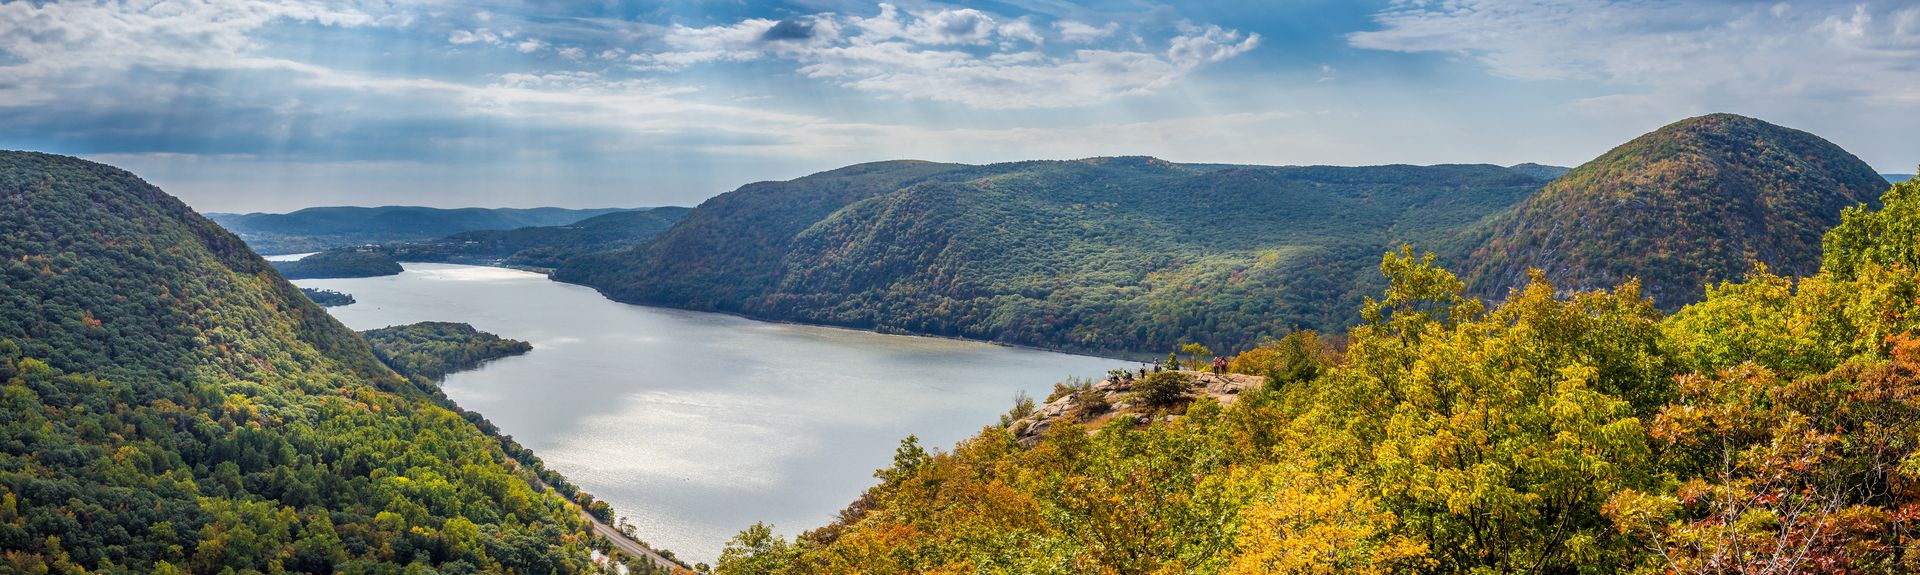 Hudson Valley, New York, Verenigde Staten